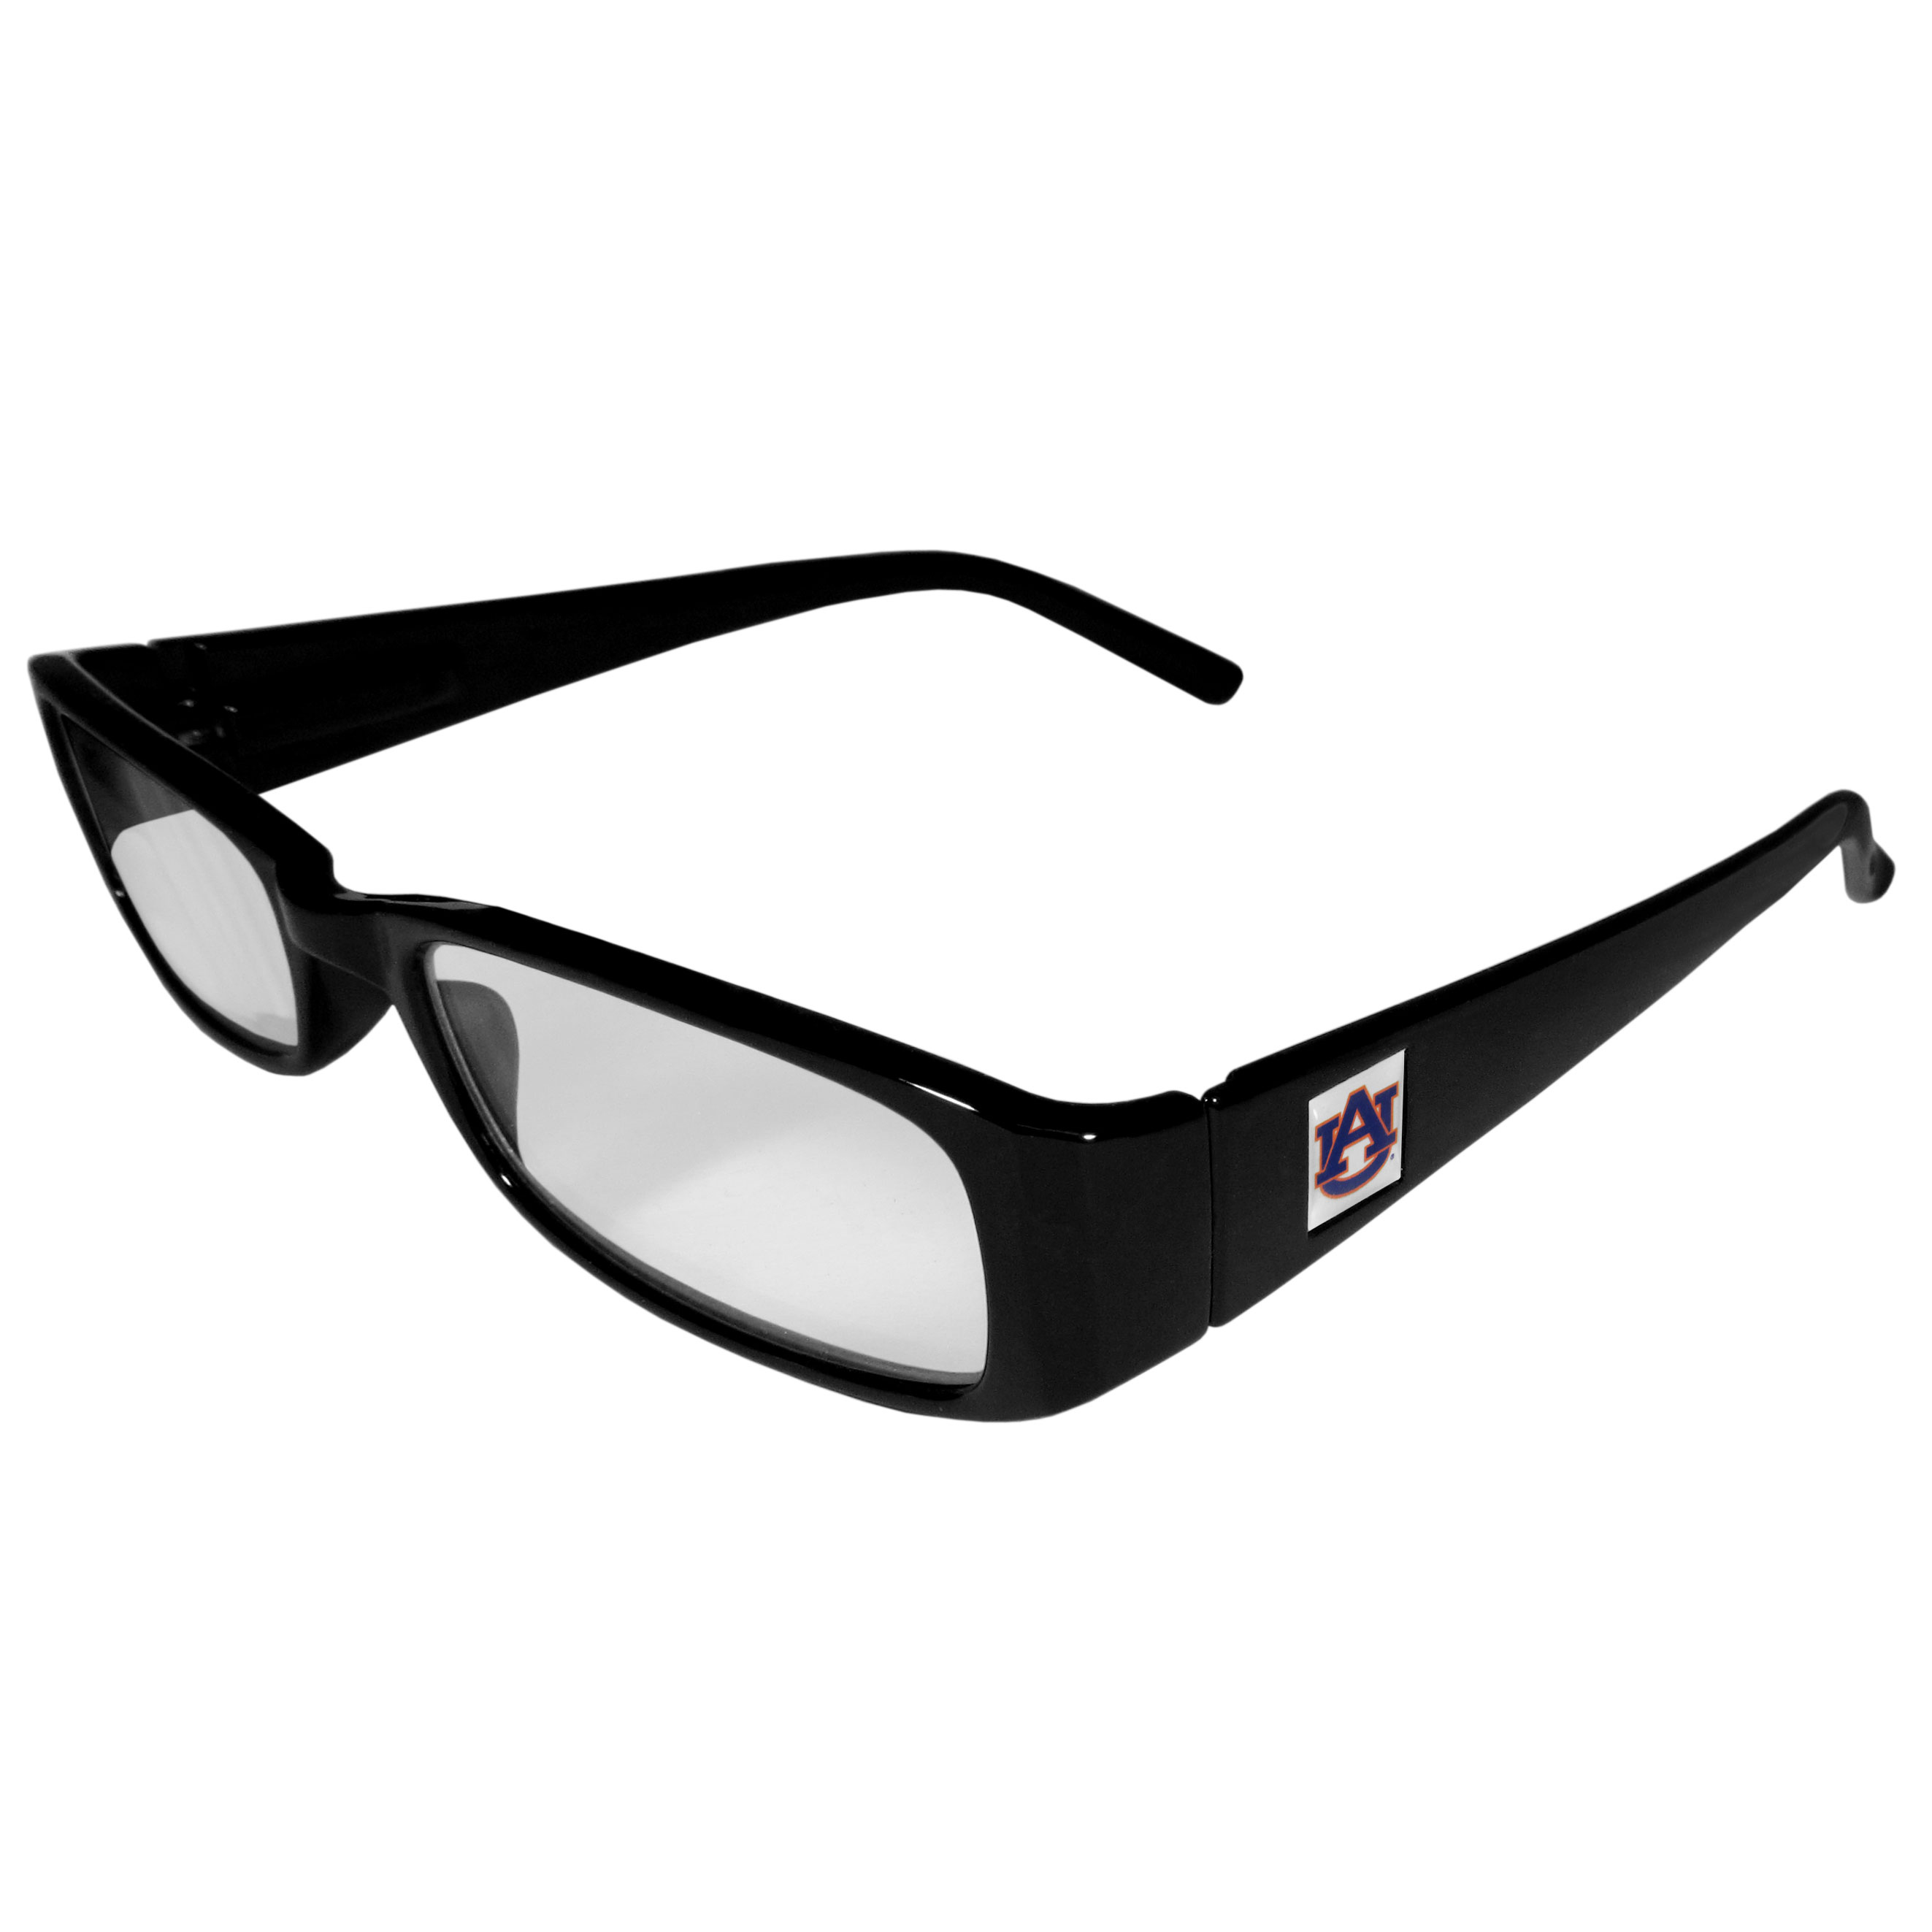 Auburn Tigers Black Reading Glasses +2.00 - Our Auburn Tigers reading glasses are 5.25 inches wide and feature the team logo on each arm. Magnification Power 2.00